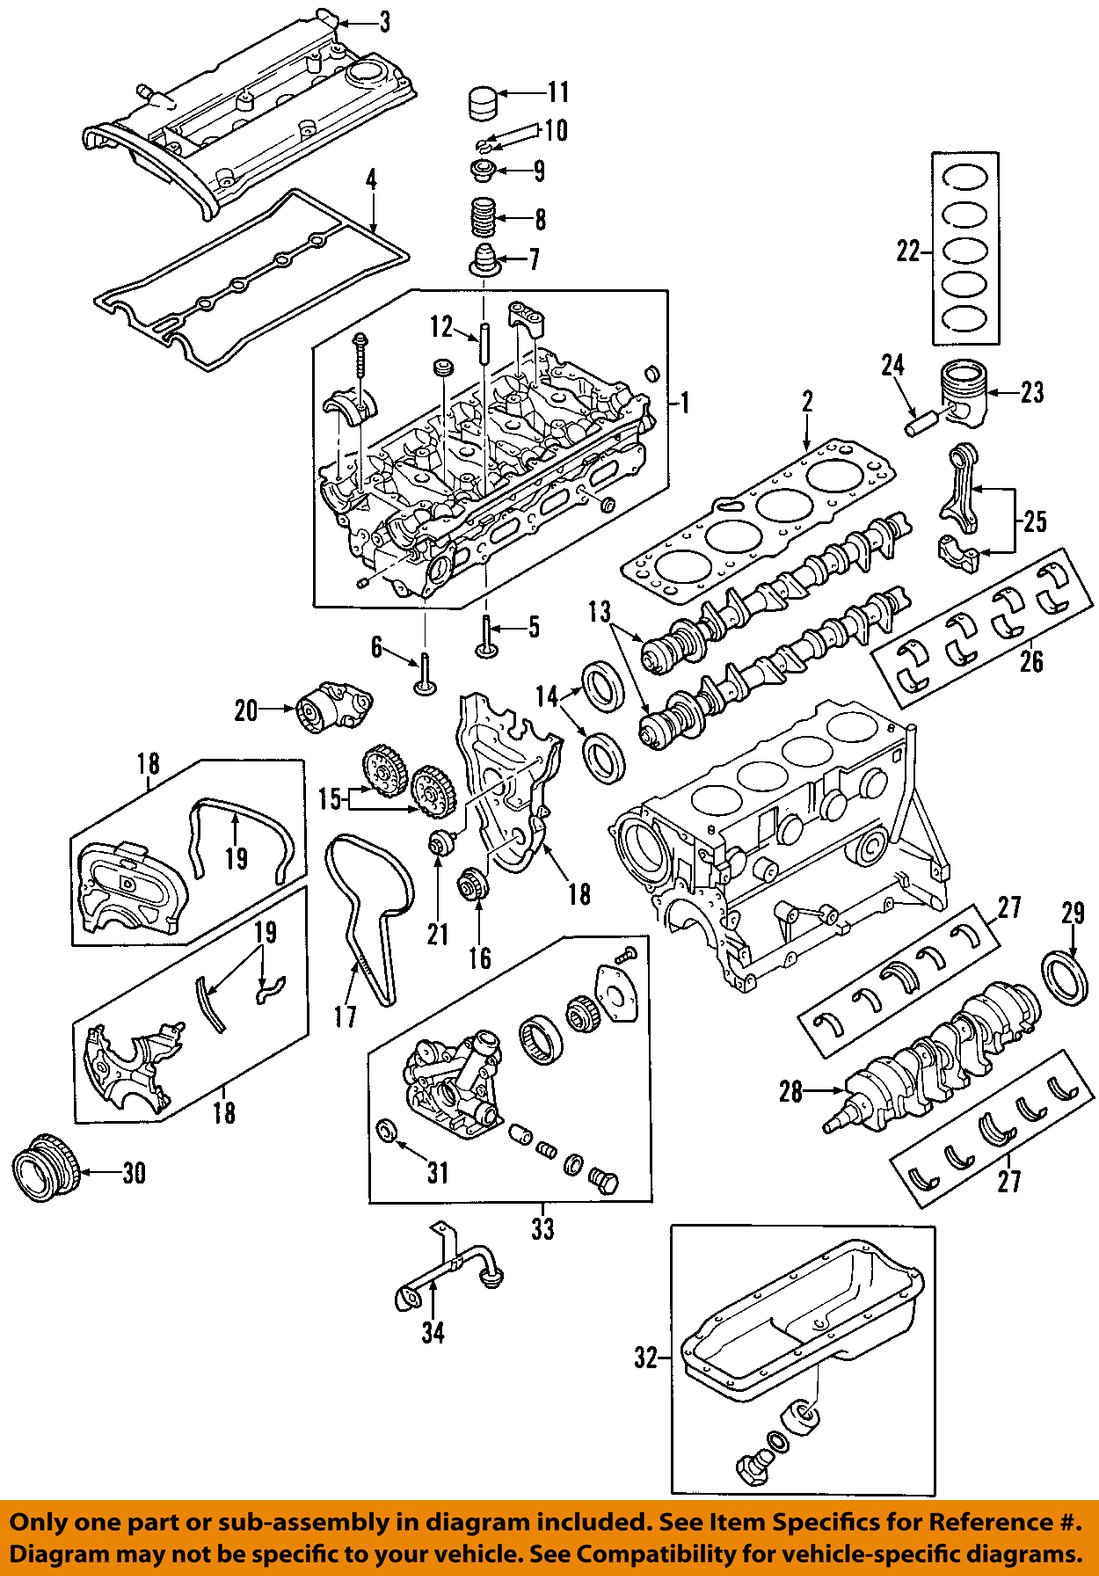 2011 Aveo Engine Diagram Ask Answer Wiring Equinox Chevrolet Gm Oem 04 08 Piston Pin Bushing 96350355 Ebay Rh Com 2010 Chevy 2006